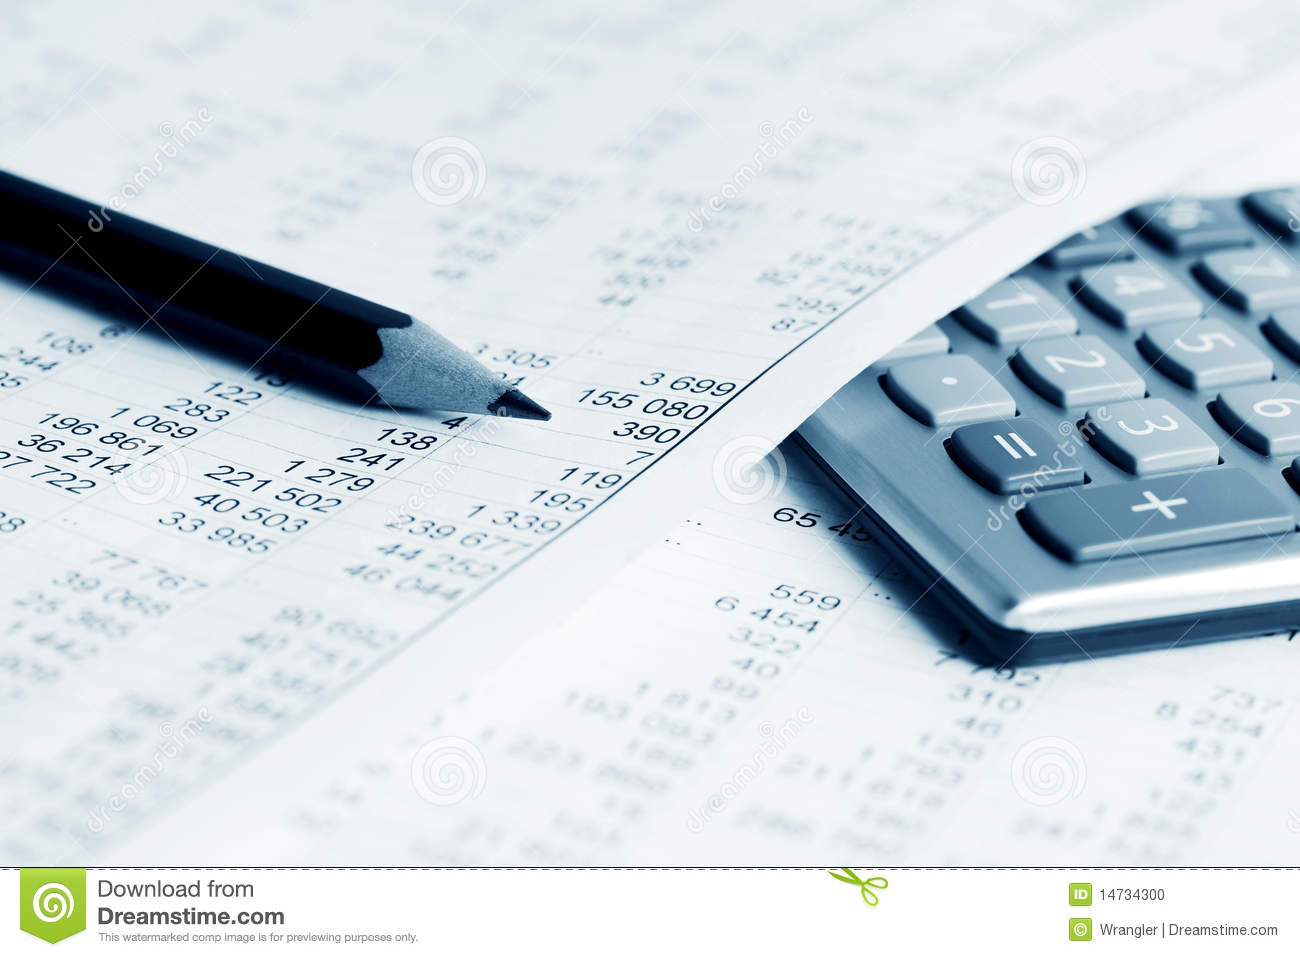 financial accounting corporate report 1975 A complete set of financial statements is used to give readers an overview of the financial results and condition of a business the financial statements are comprised of four basic reports, which are as follows: income statement  presents the revenues, expenses, and profits/losses generated d.